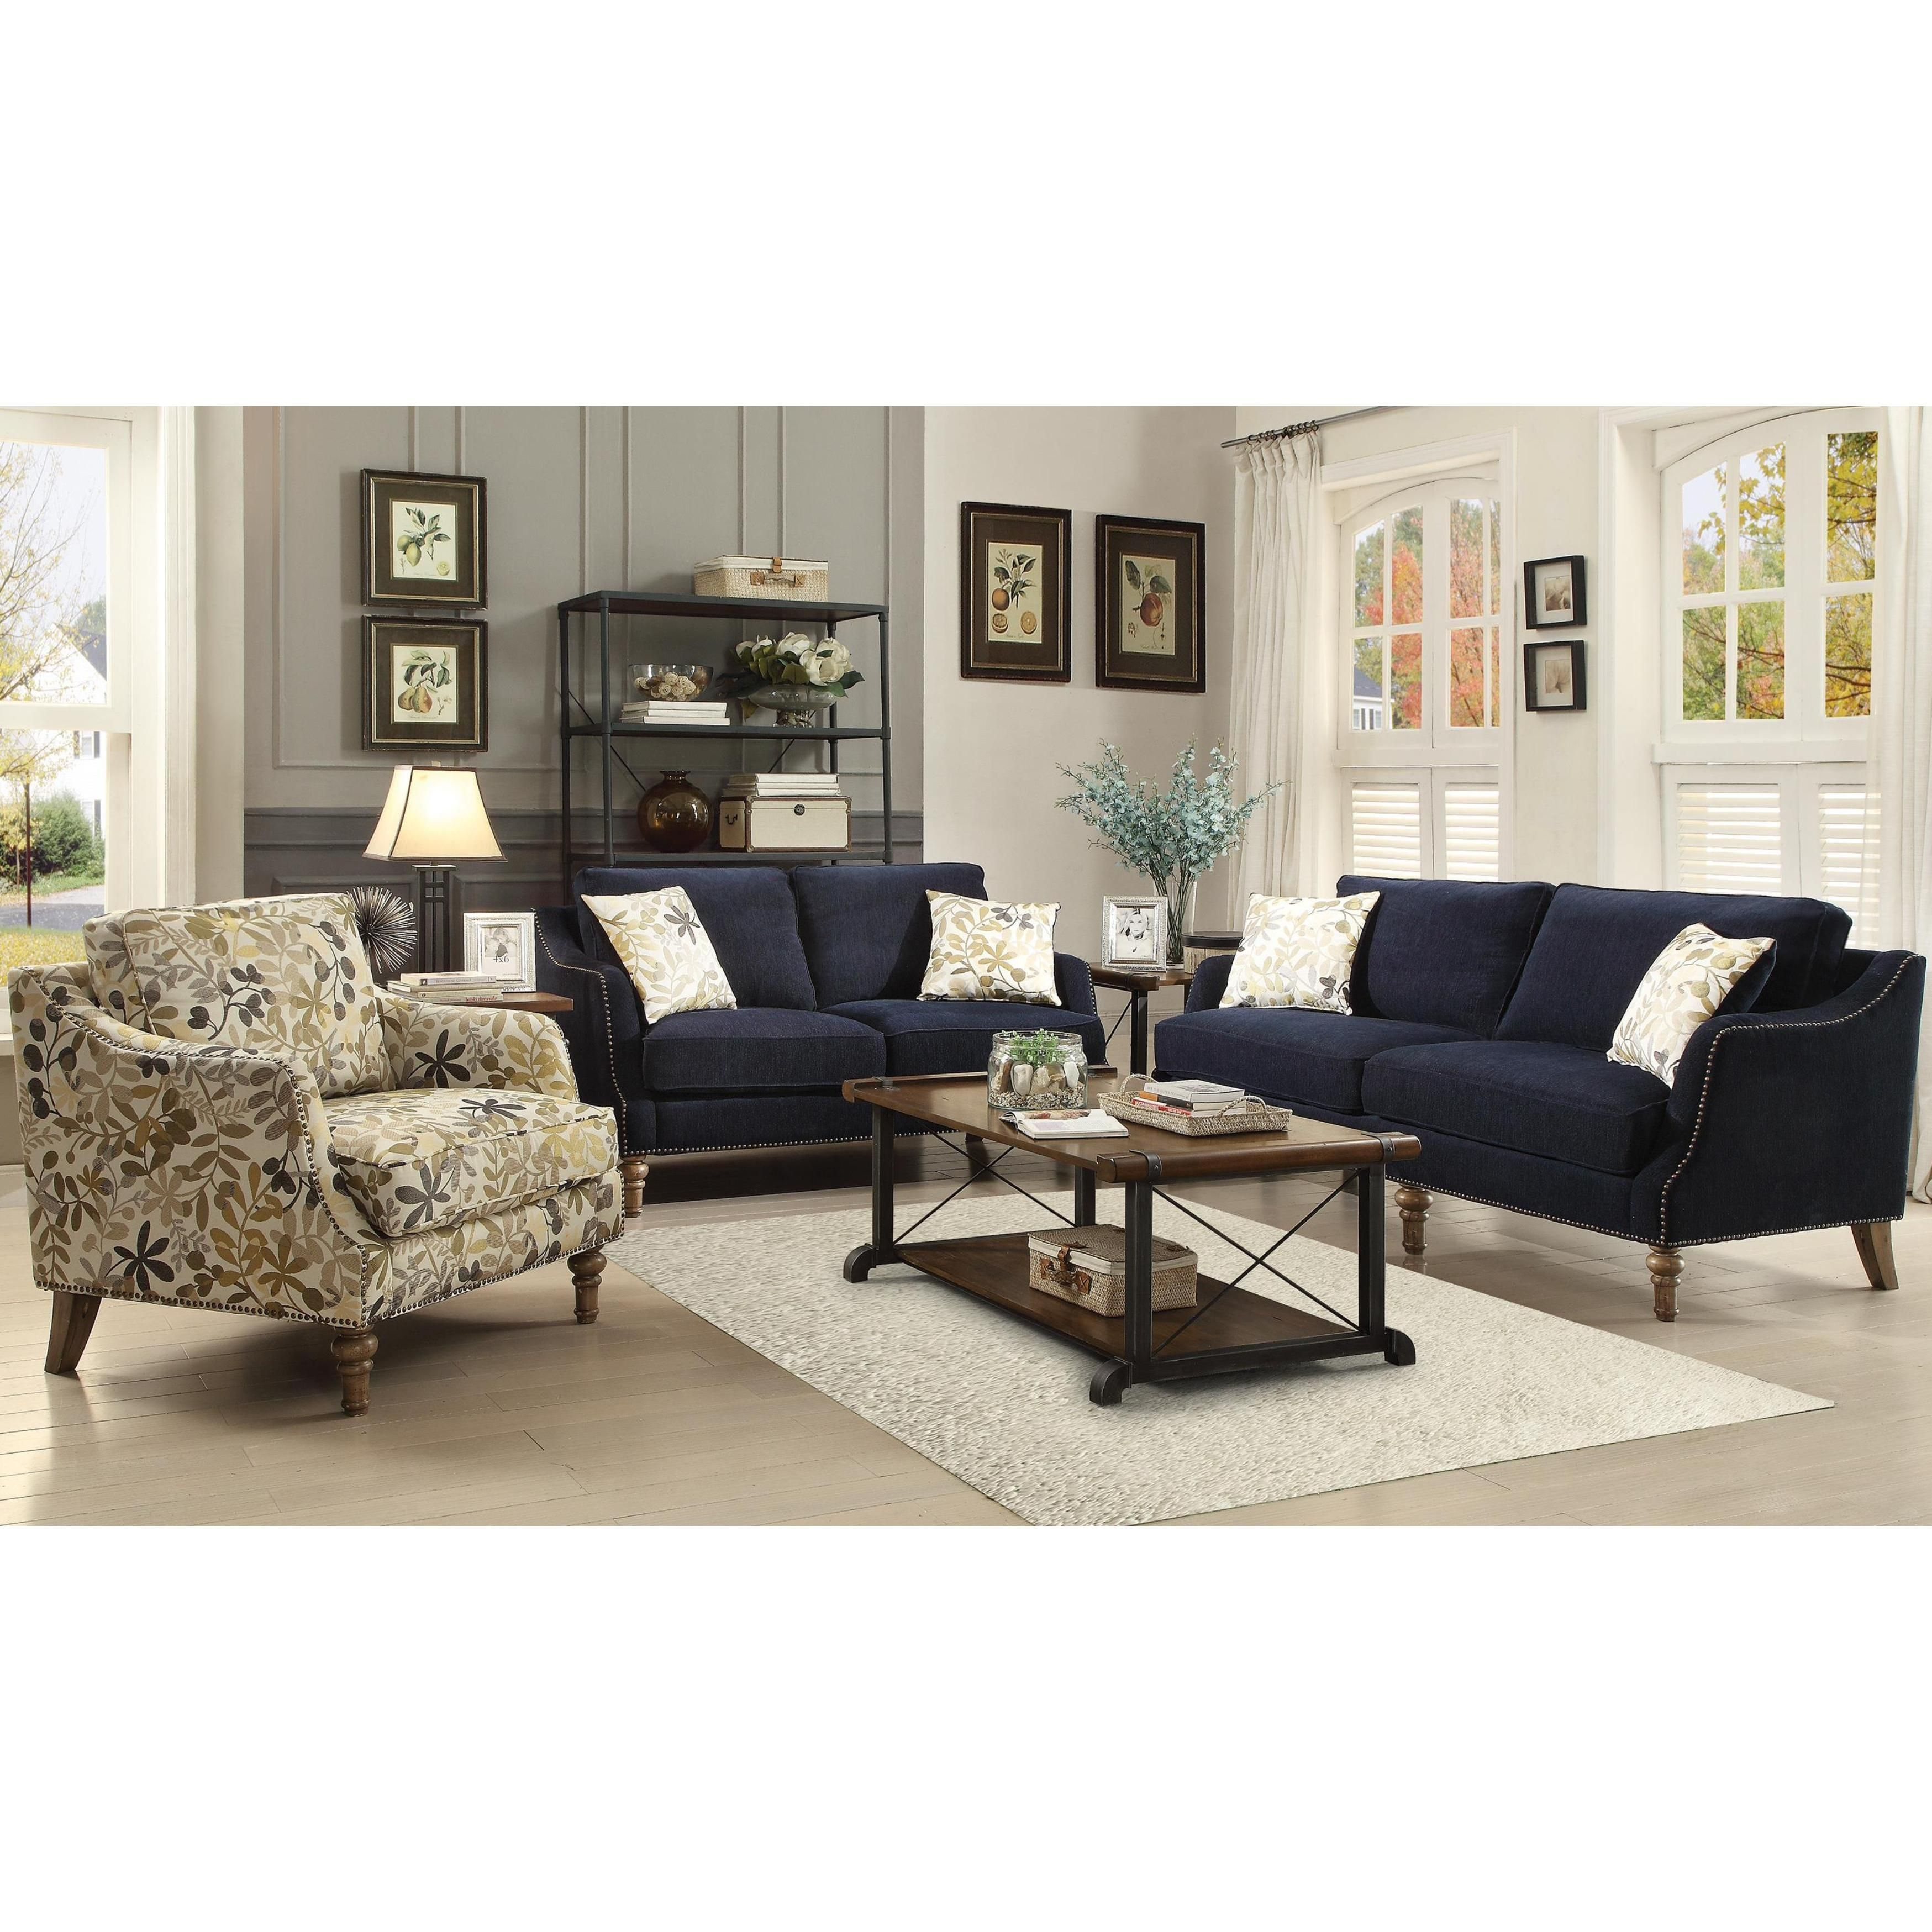 Deep Ink Blue Chenille Fabric upholstery with Nailhead Trim Living